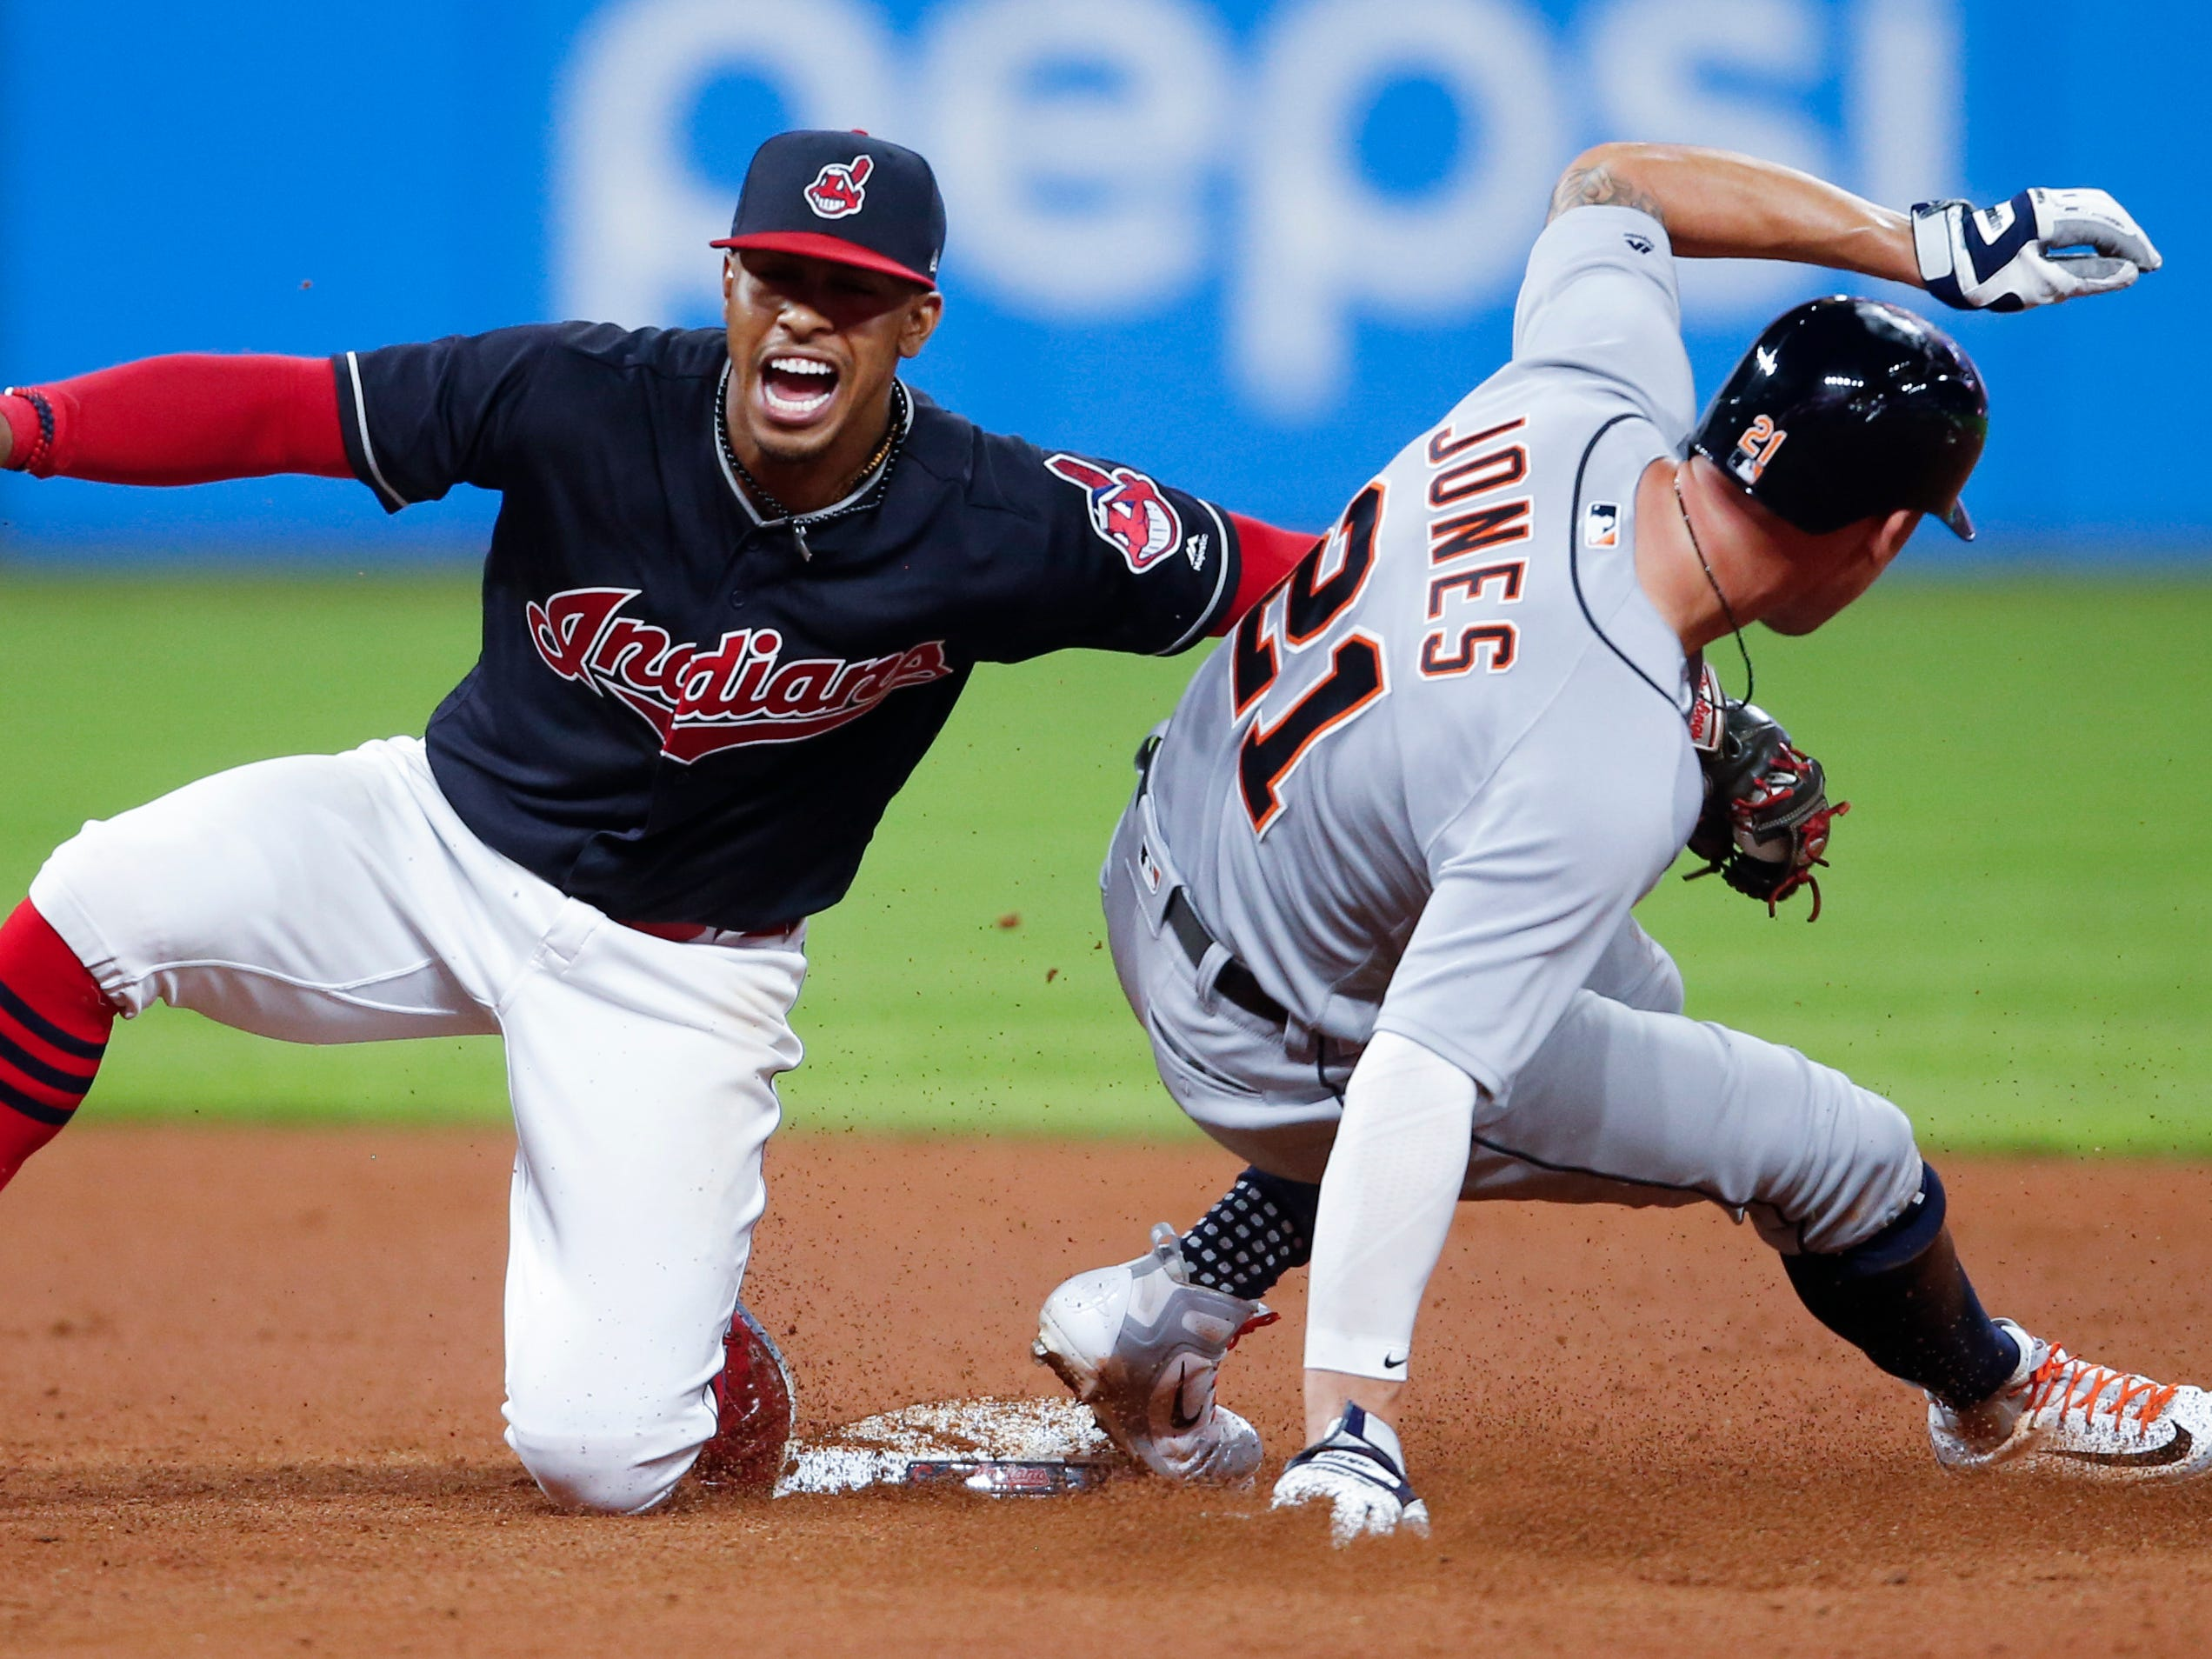 Detroit Tigers' JaCoby Jones, right, steals second base as Cleveland Indians' Francisco Lindor attempts a tag during the eighth inning.